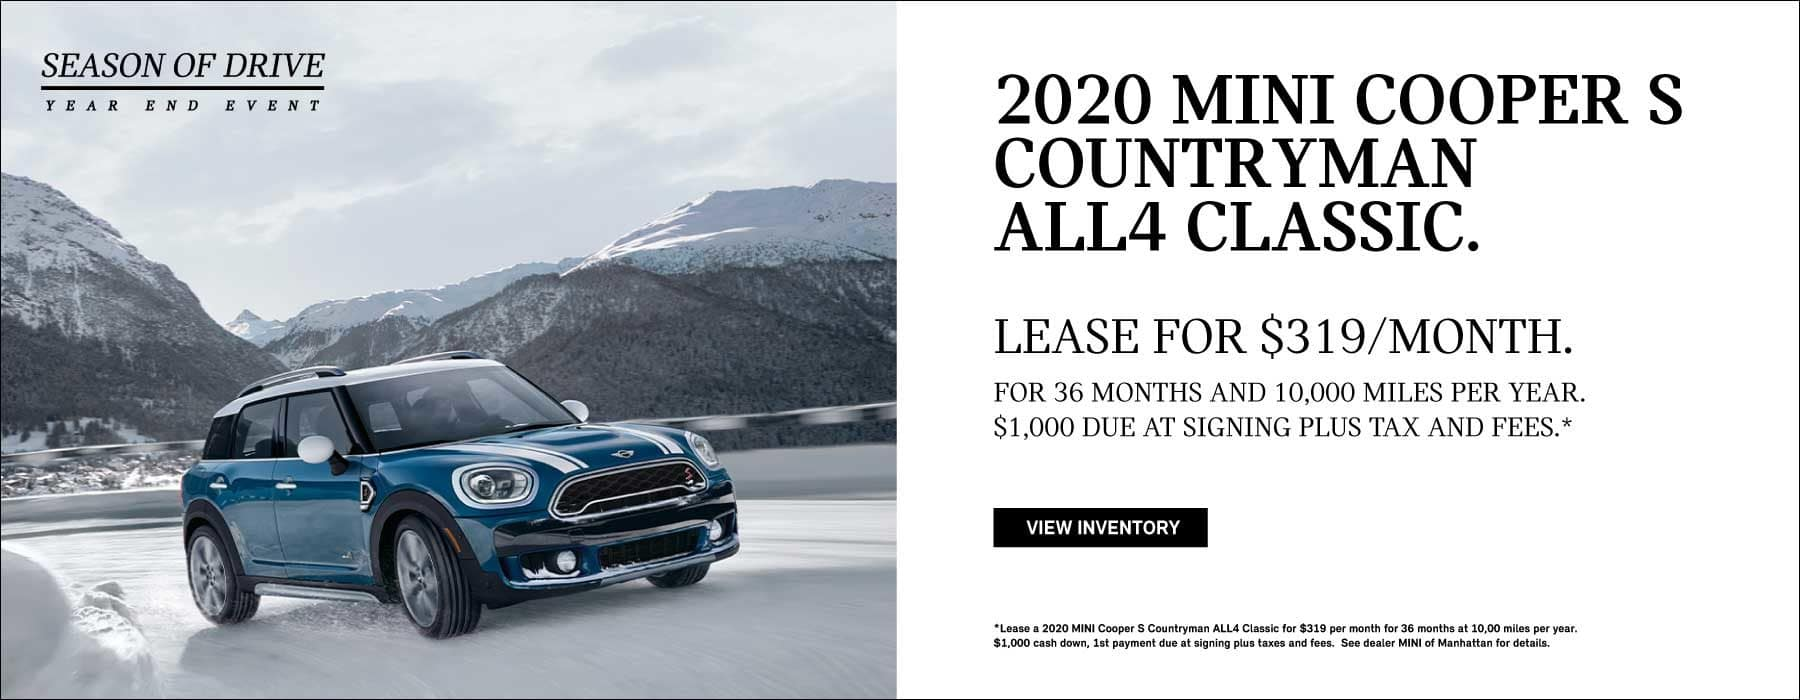 2020 MINI COOPER S COUNTRYMAN ALL4 CLASSIC. Lease for $319 month for 36 months and 10,000 miles per year. $1,000 due at signing plus tax and fees. Click to view inventory. *See dealer for complete details.